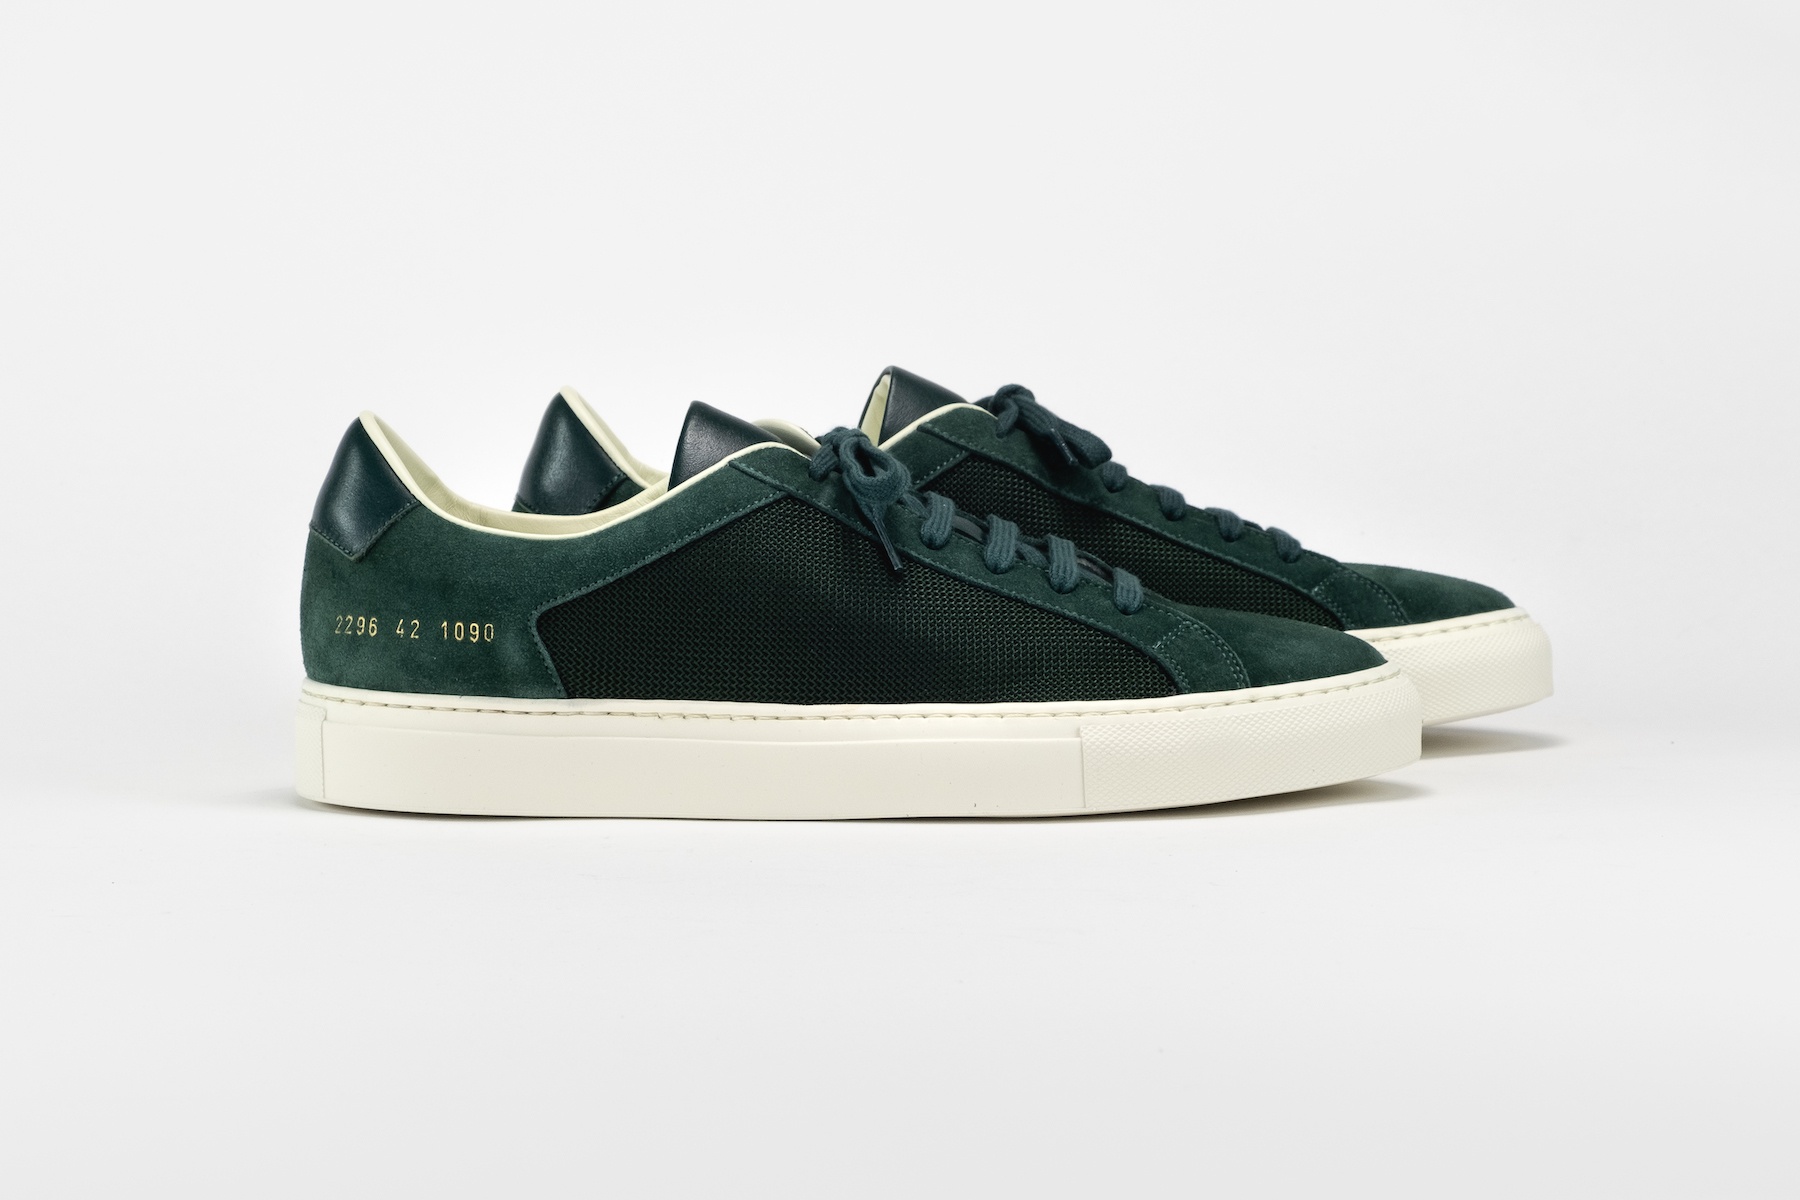 http://www.commonprojects.com/man-images/1.jpg